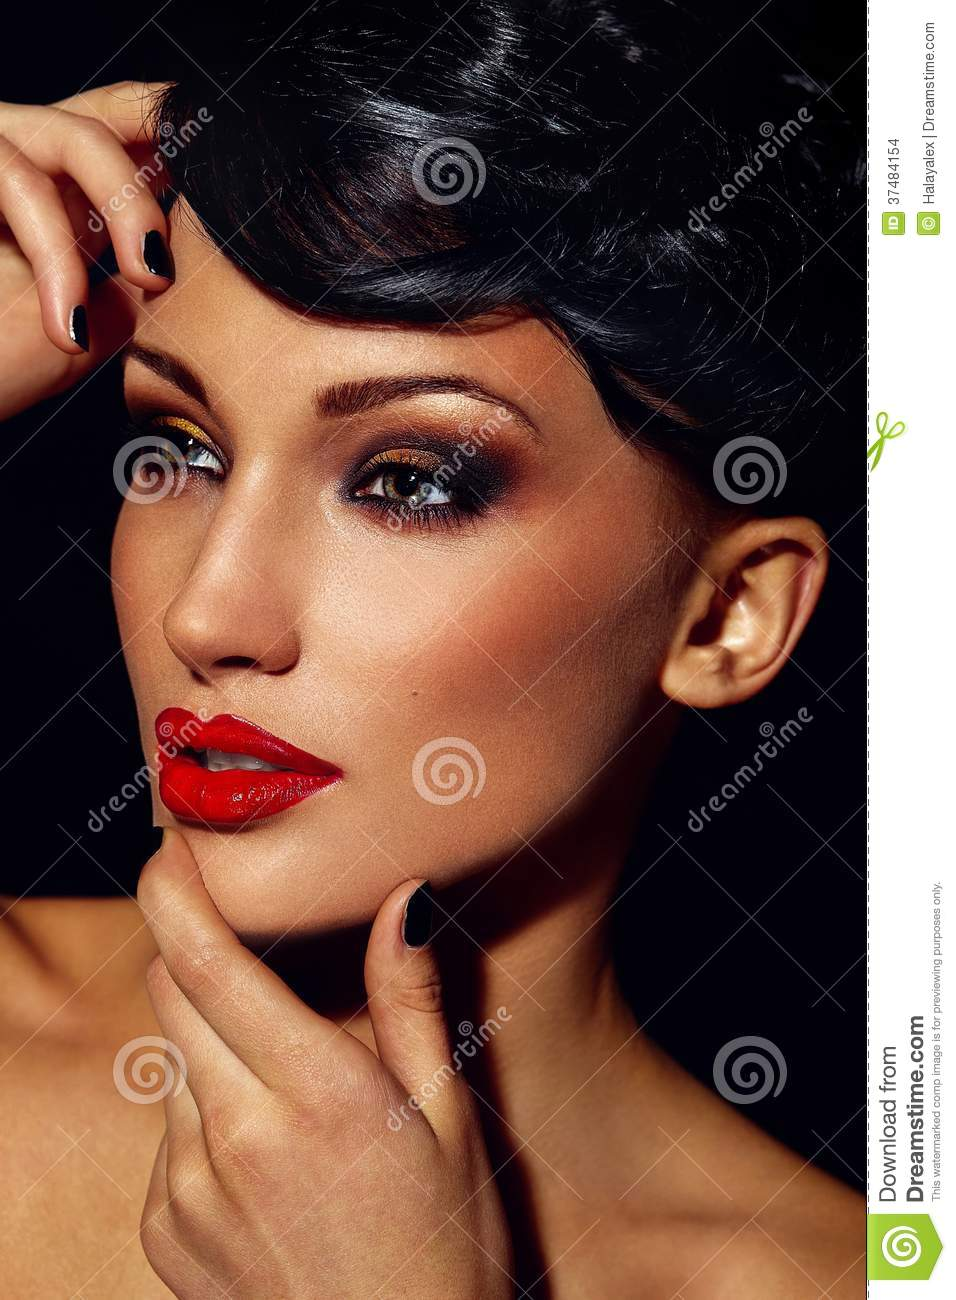 Glamor closeup portrait of beautiful stylish brunette Caucasian young woman model with bright makeup, with red lips, with per